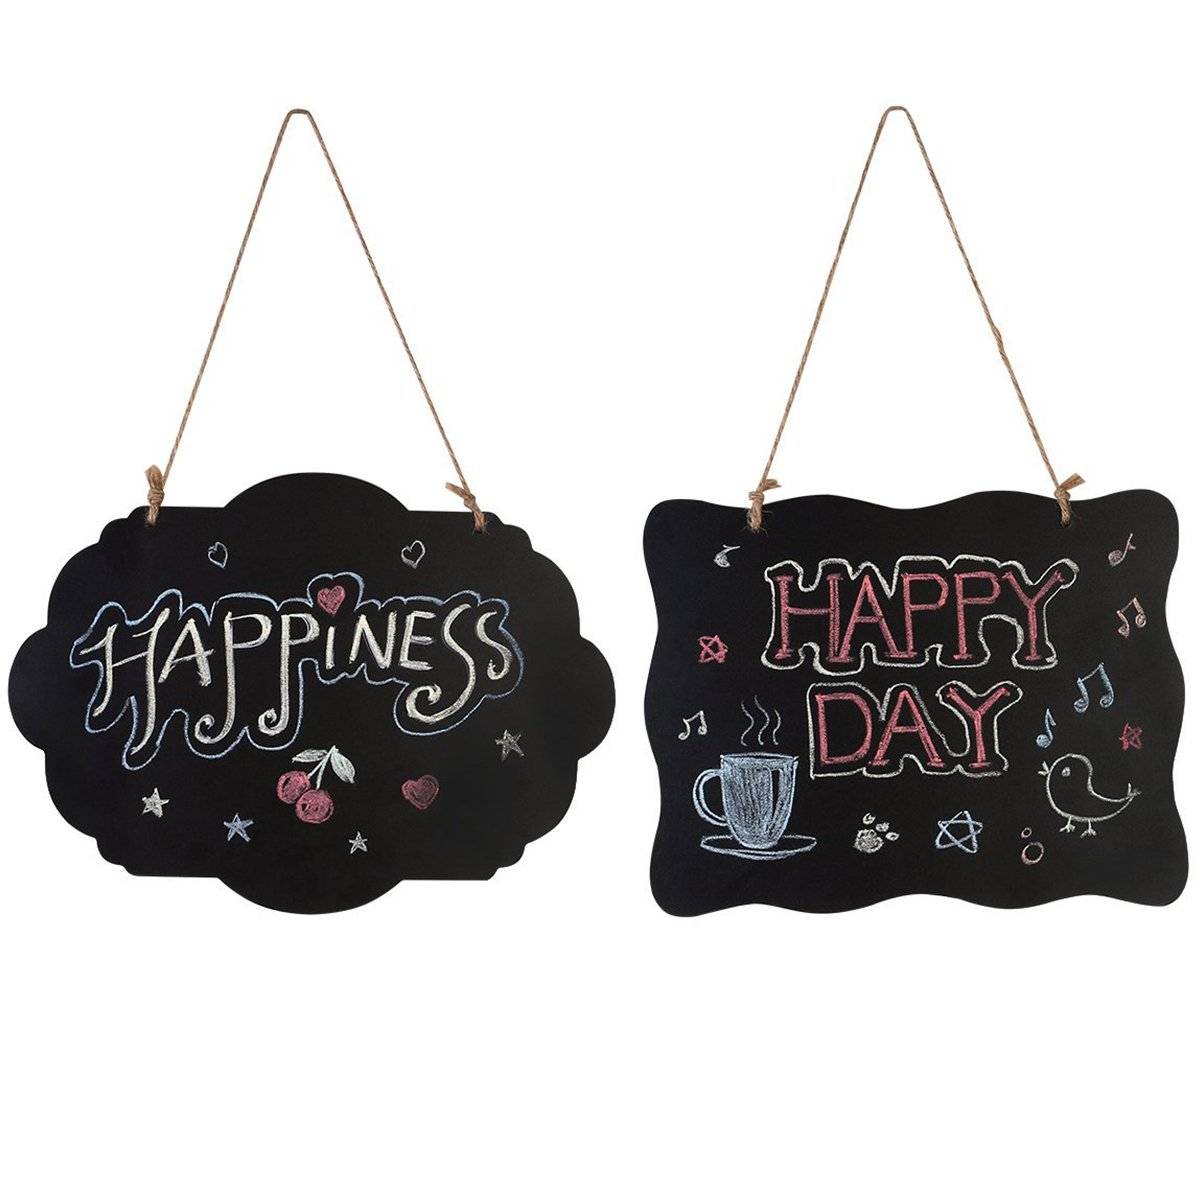 HOMEMAXS Chalkboard Sign Double-Sided Message Board with Hanging String - 2 Pack (2Pack) SYNCHKG104094